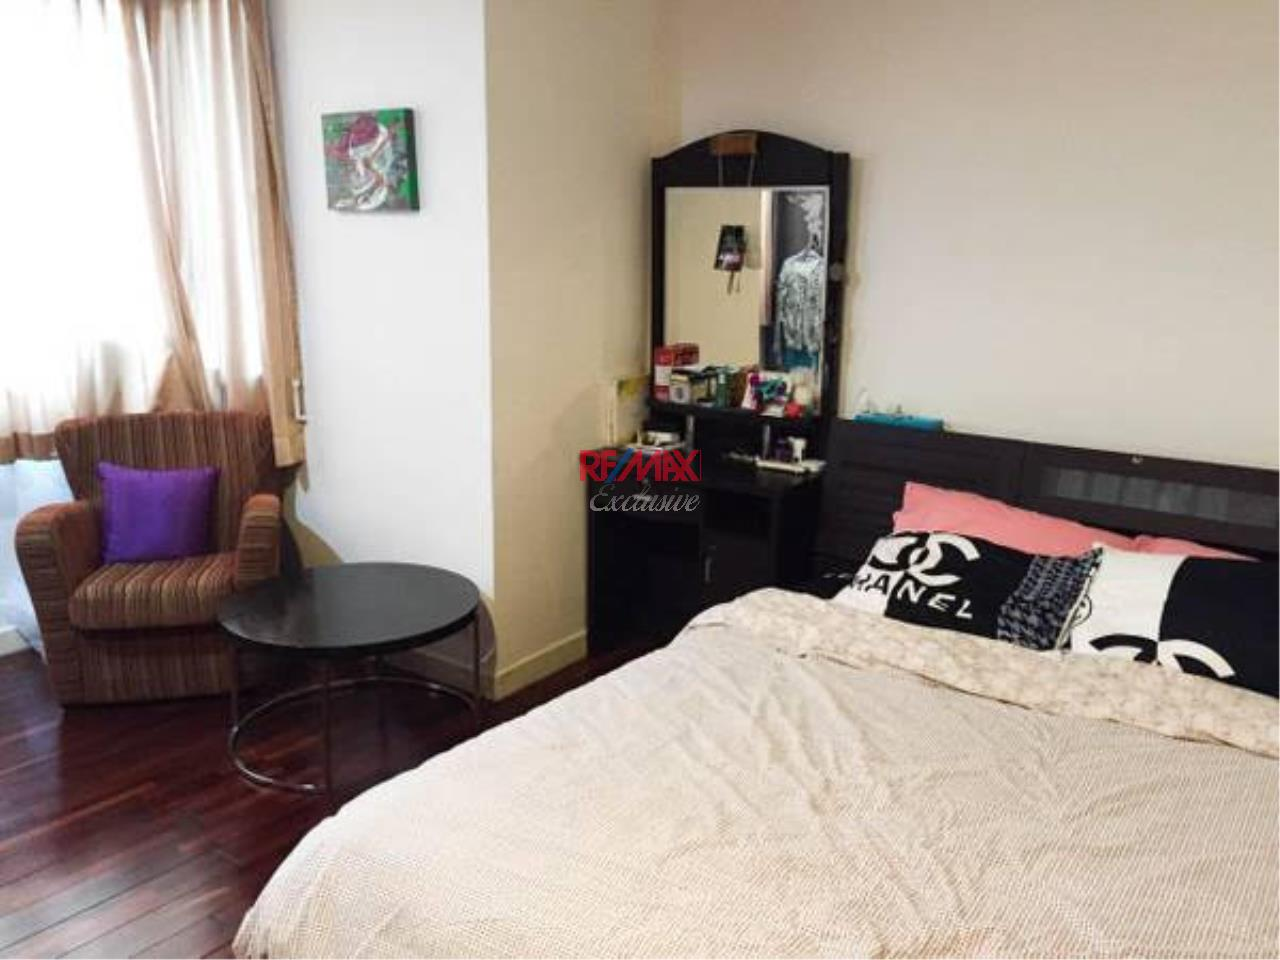 RE/MAX Exclusive Agency's Baan Saran 1 Bedroom Big Size for sale Good Price 4200000 THB 1